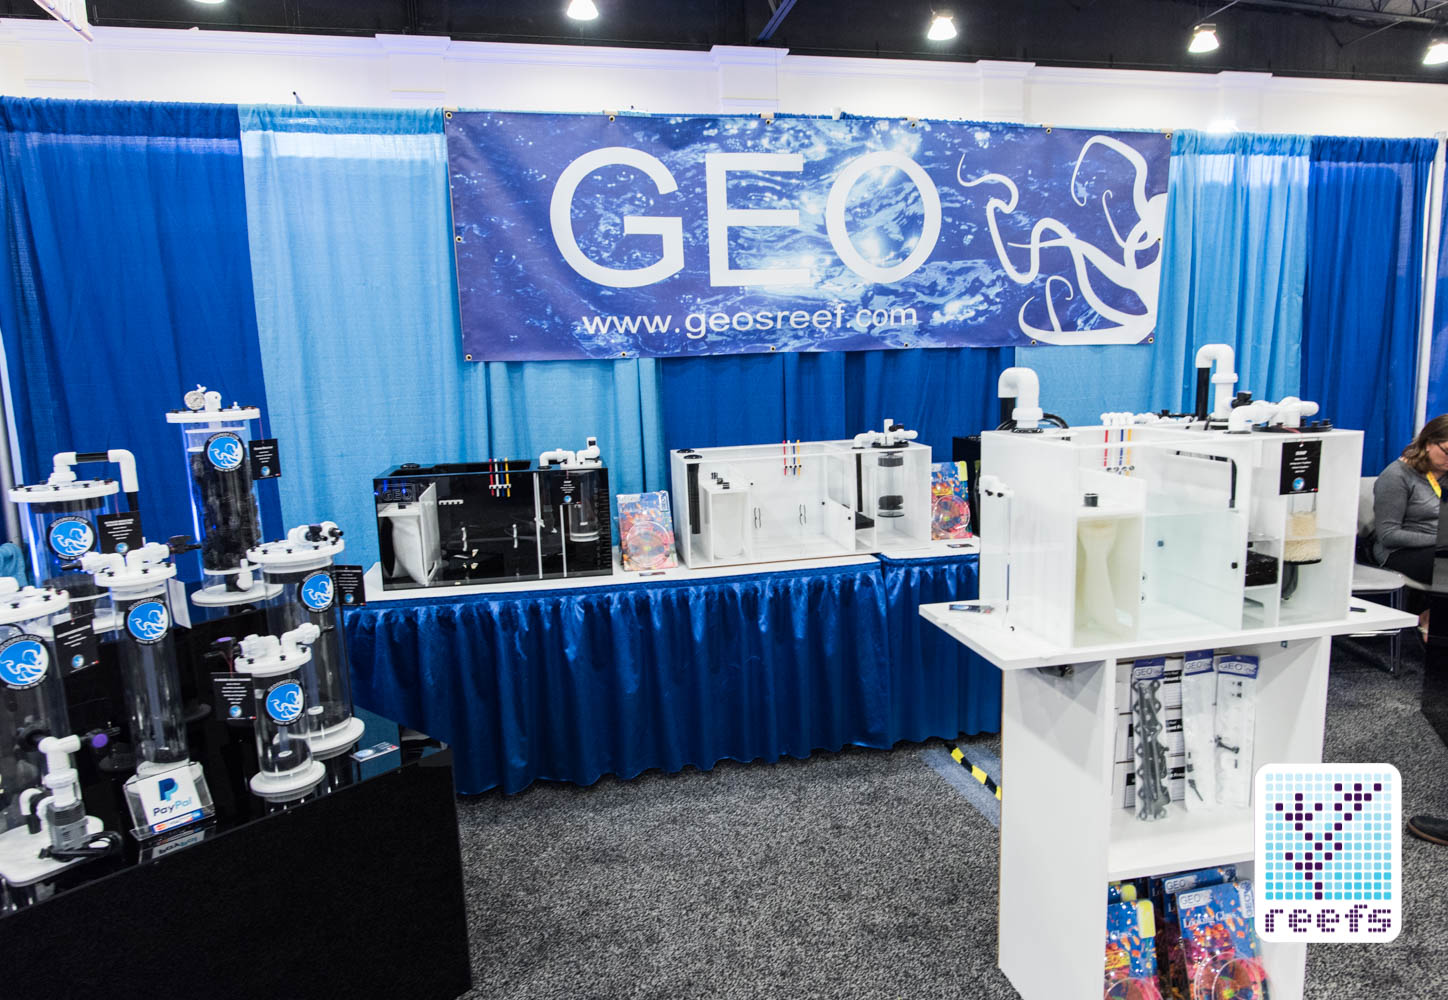 GEO's Reef booth at MACNA 2016 in San Diego